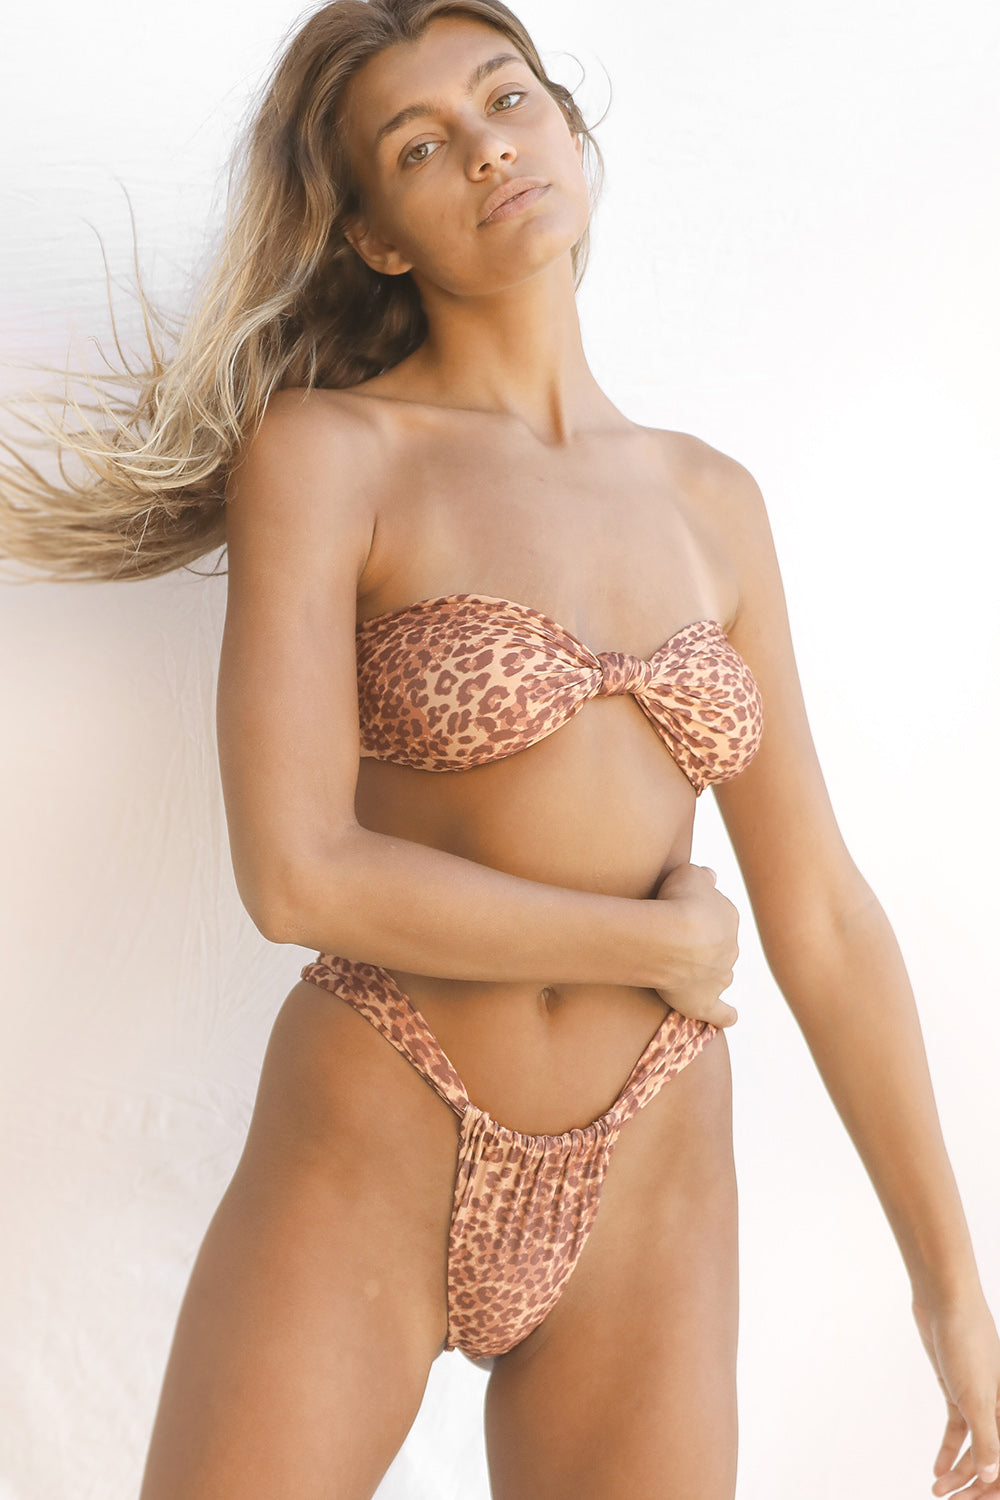 Stone Fox Swim Lele Top in Baby Bengal